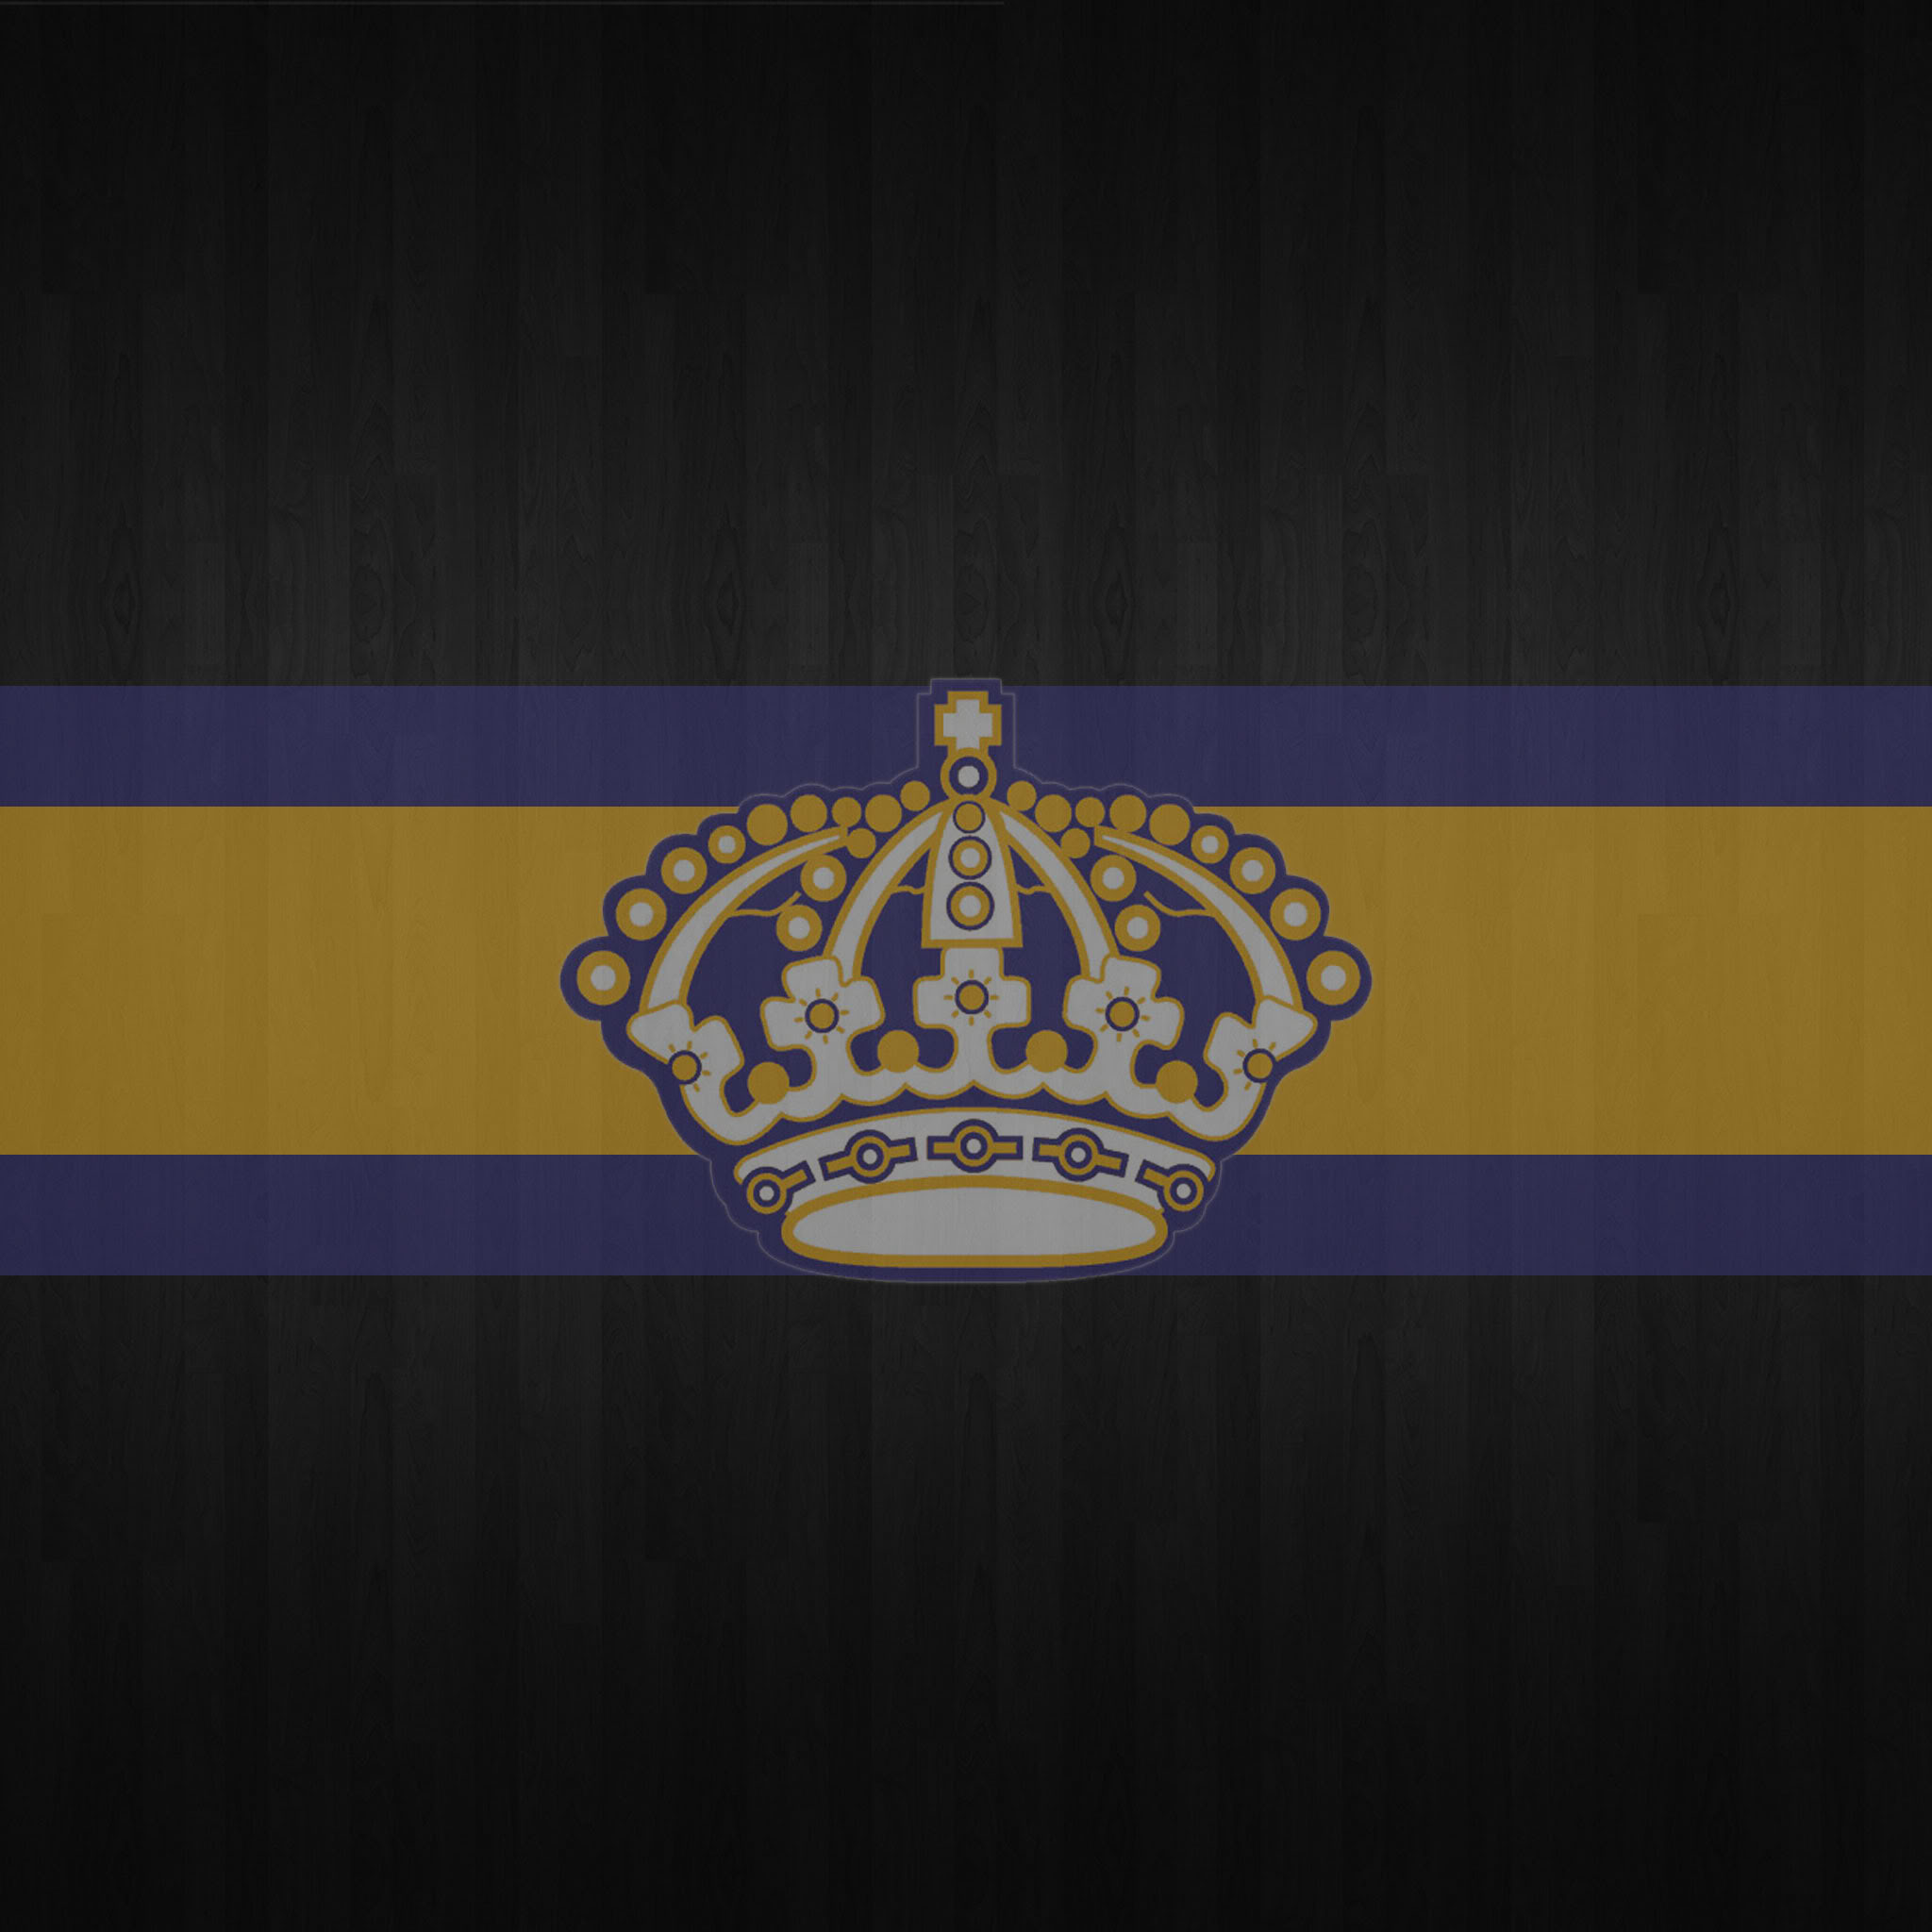 Image Gallery la kings crown wallpaper